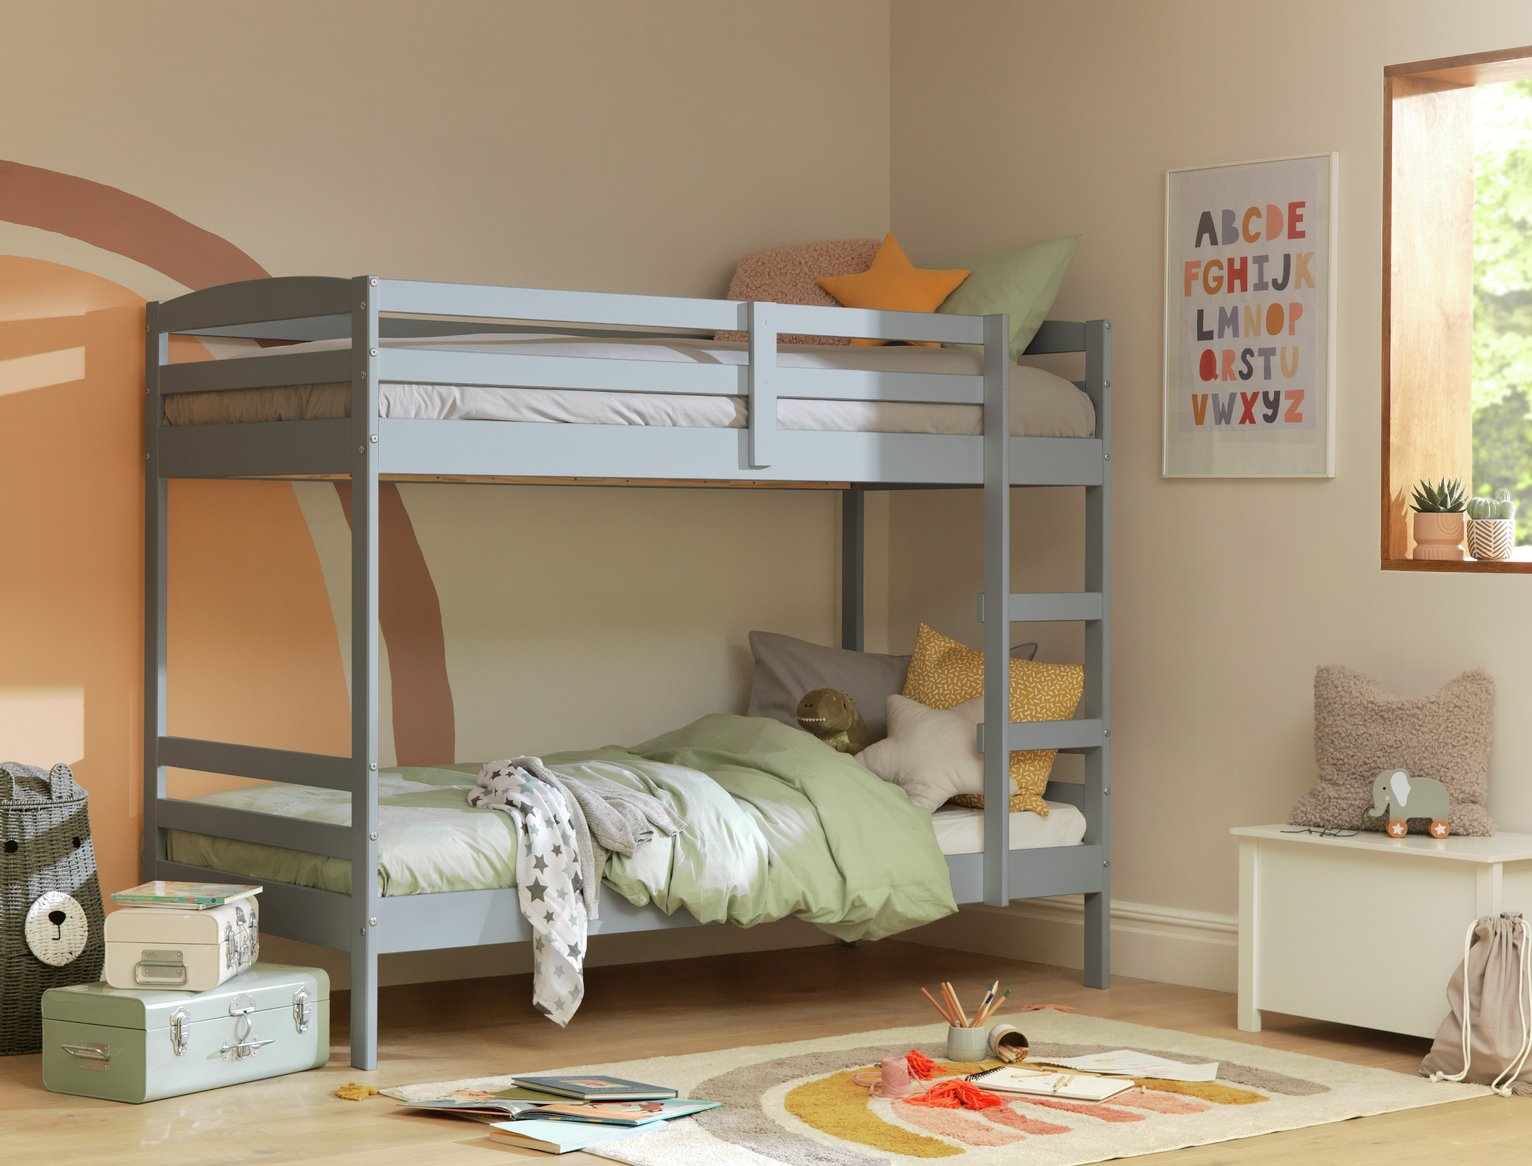 Results For Bunk Bed With Mattress In Home And Garden Bedroom